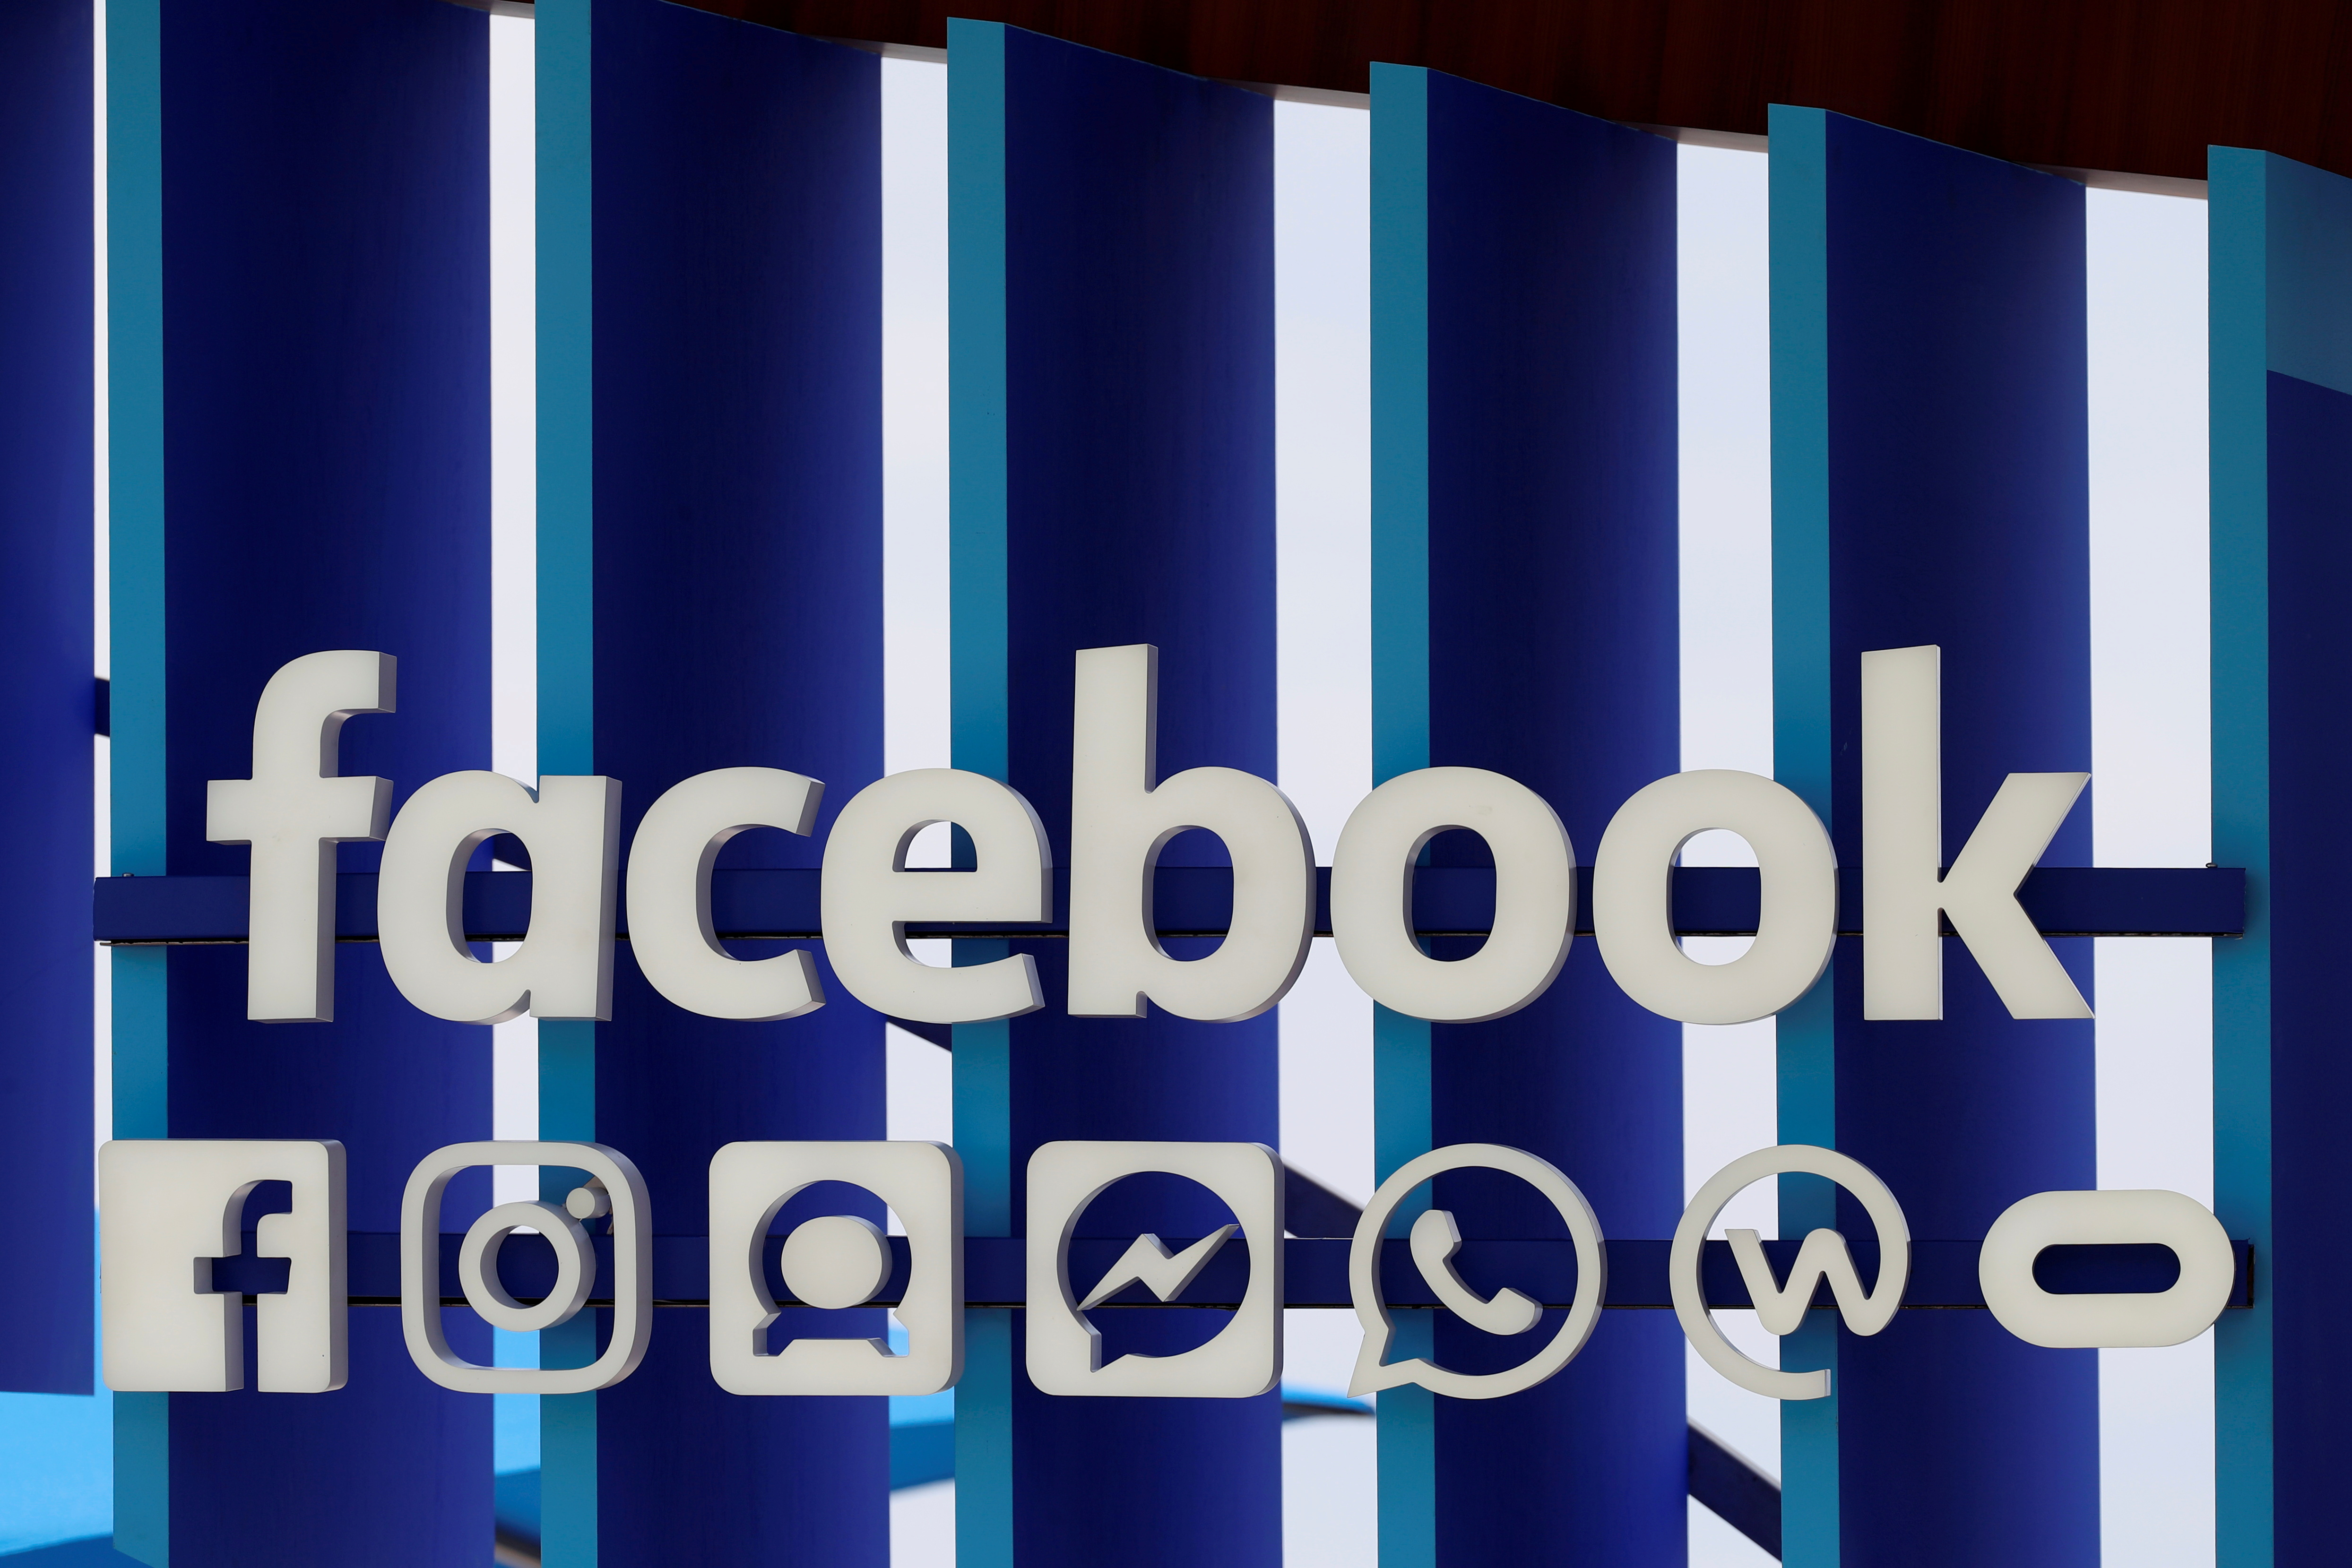 A Facebook panel is seen during the Cannes Lions International Festival of Creativity, in Cannes, France, June 20, 2018.  REUTERS/Eric Gaillard/File Photo